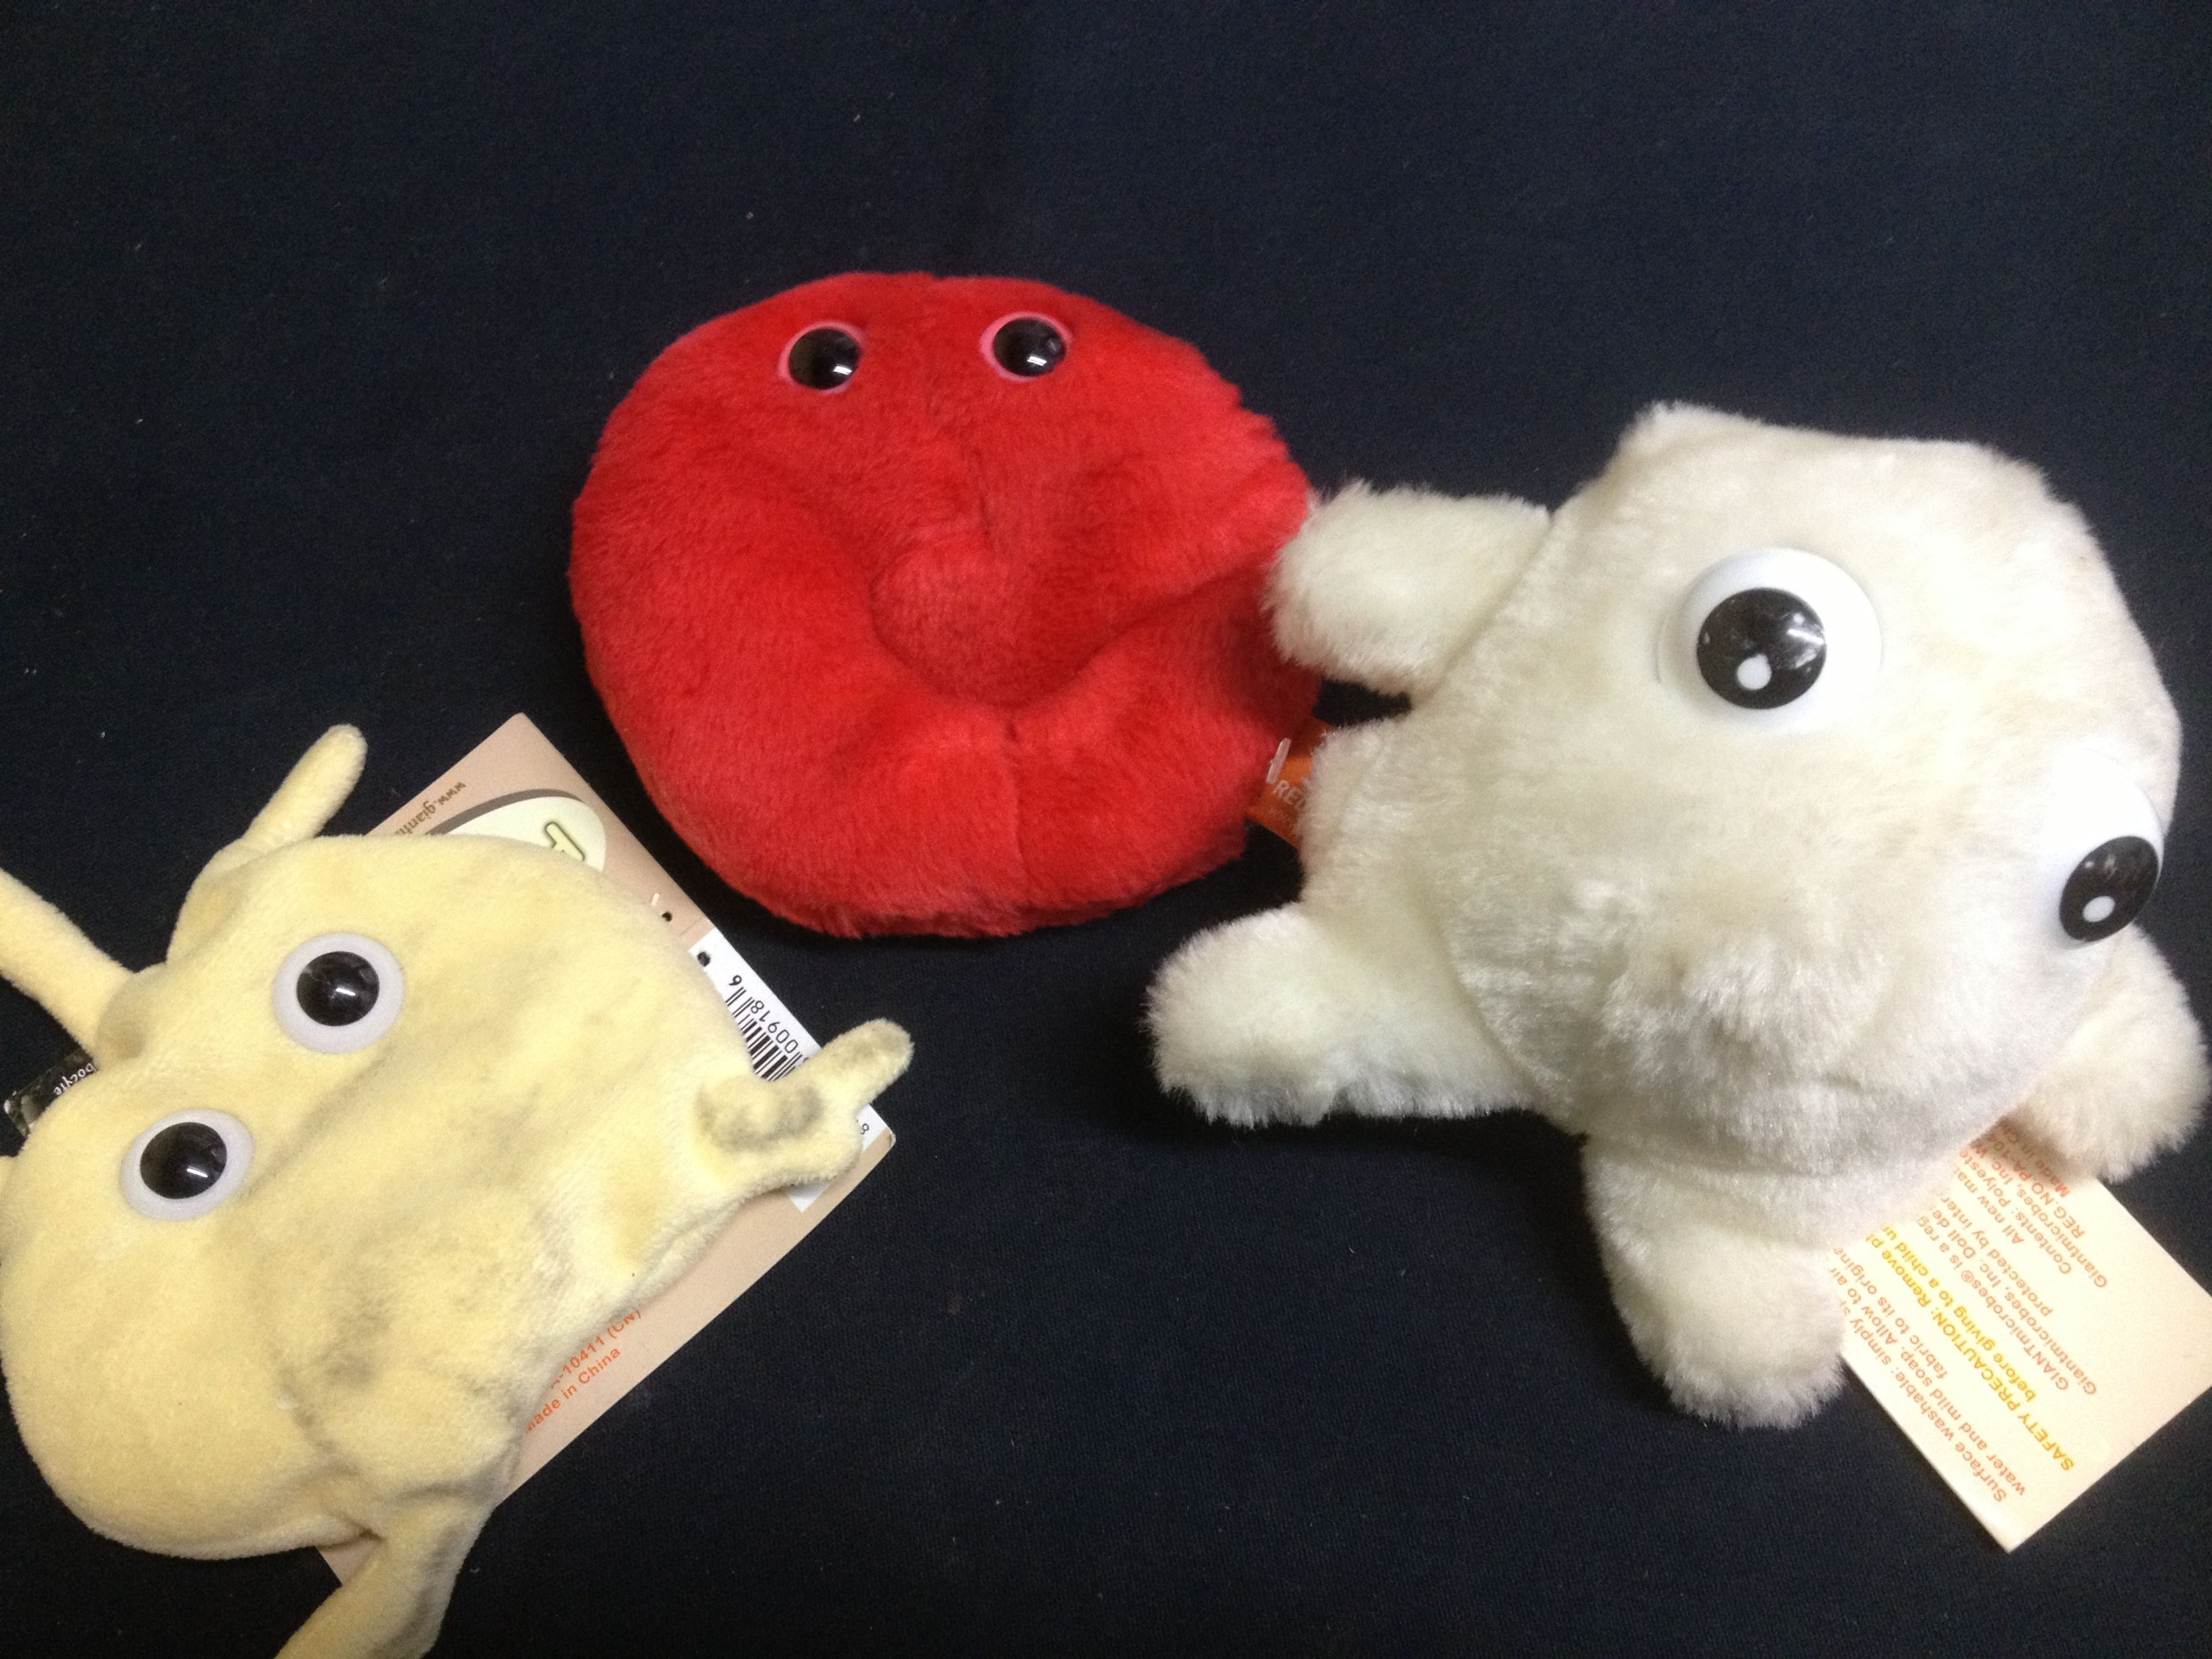 Giant Microbes Used For Teaching About Blood Cells In A